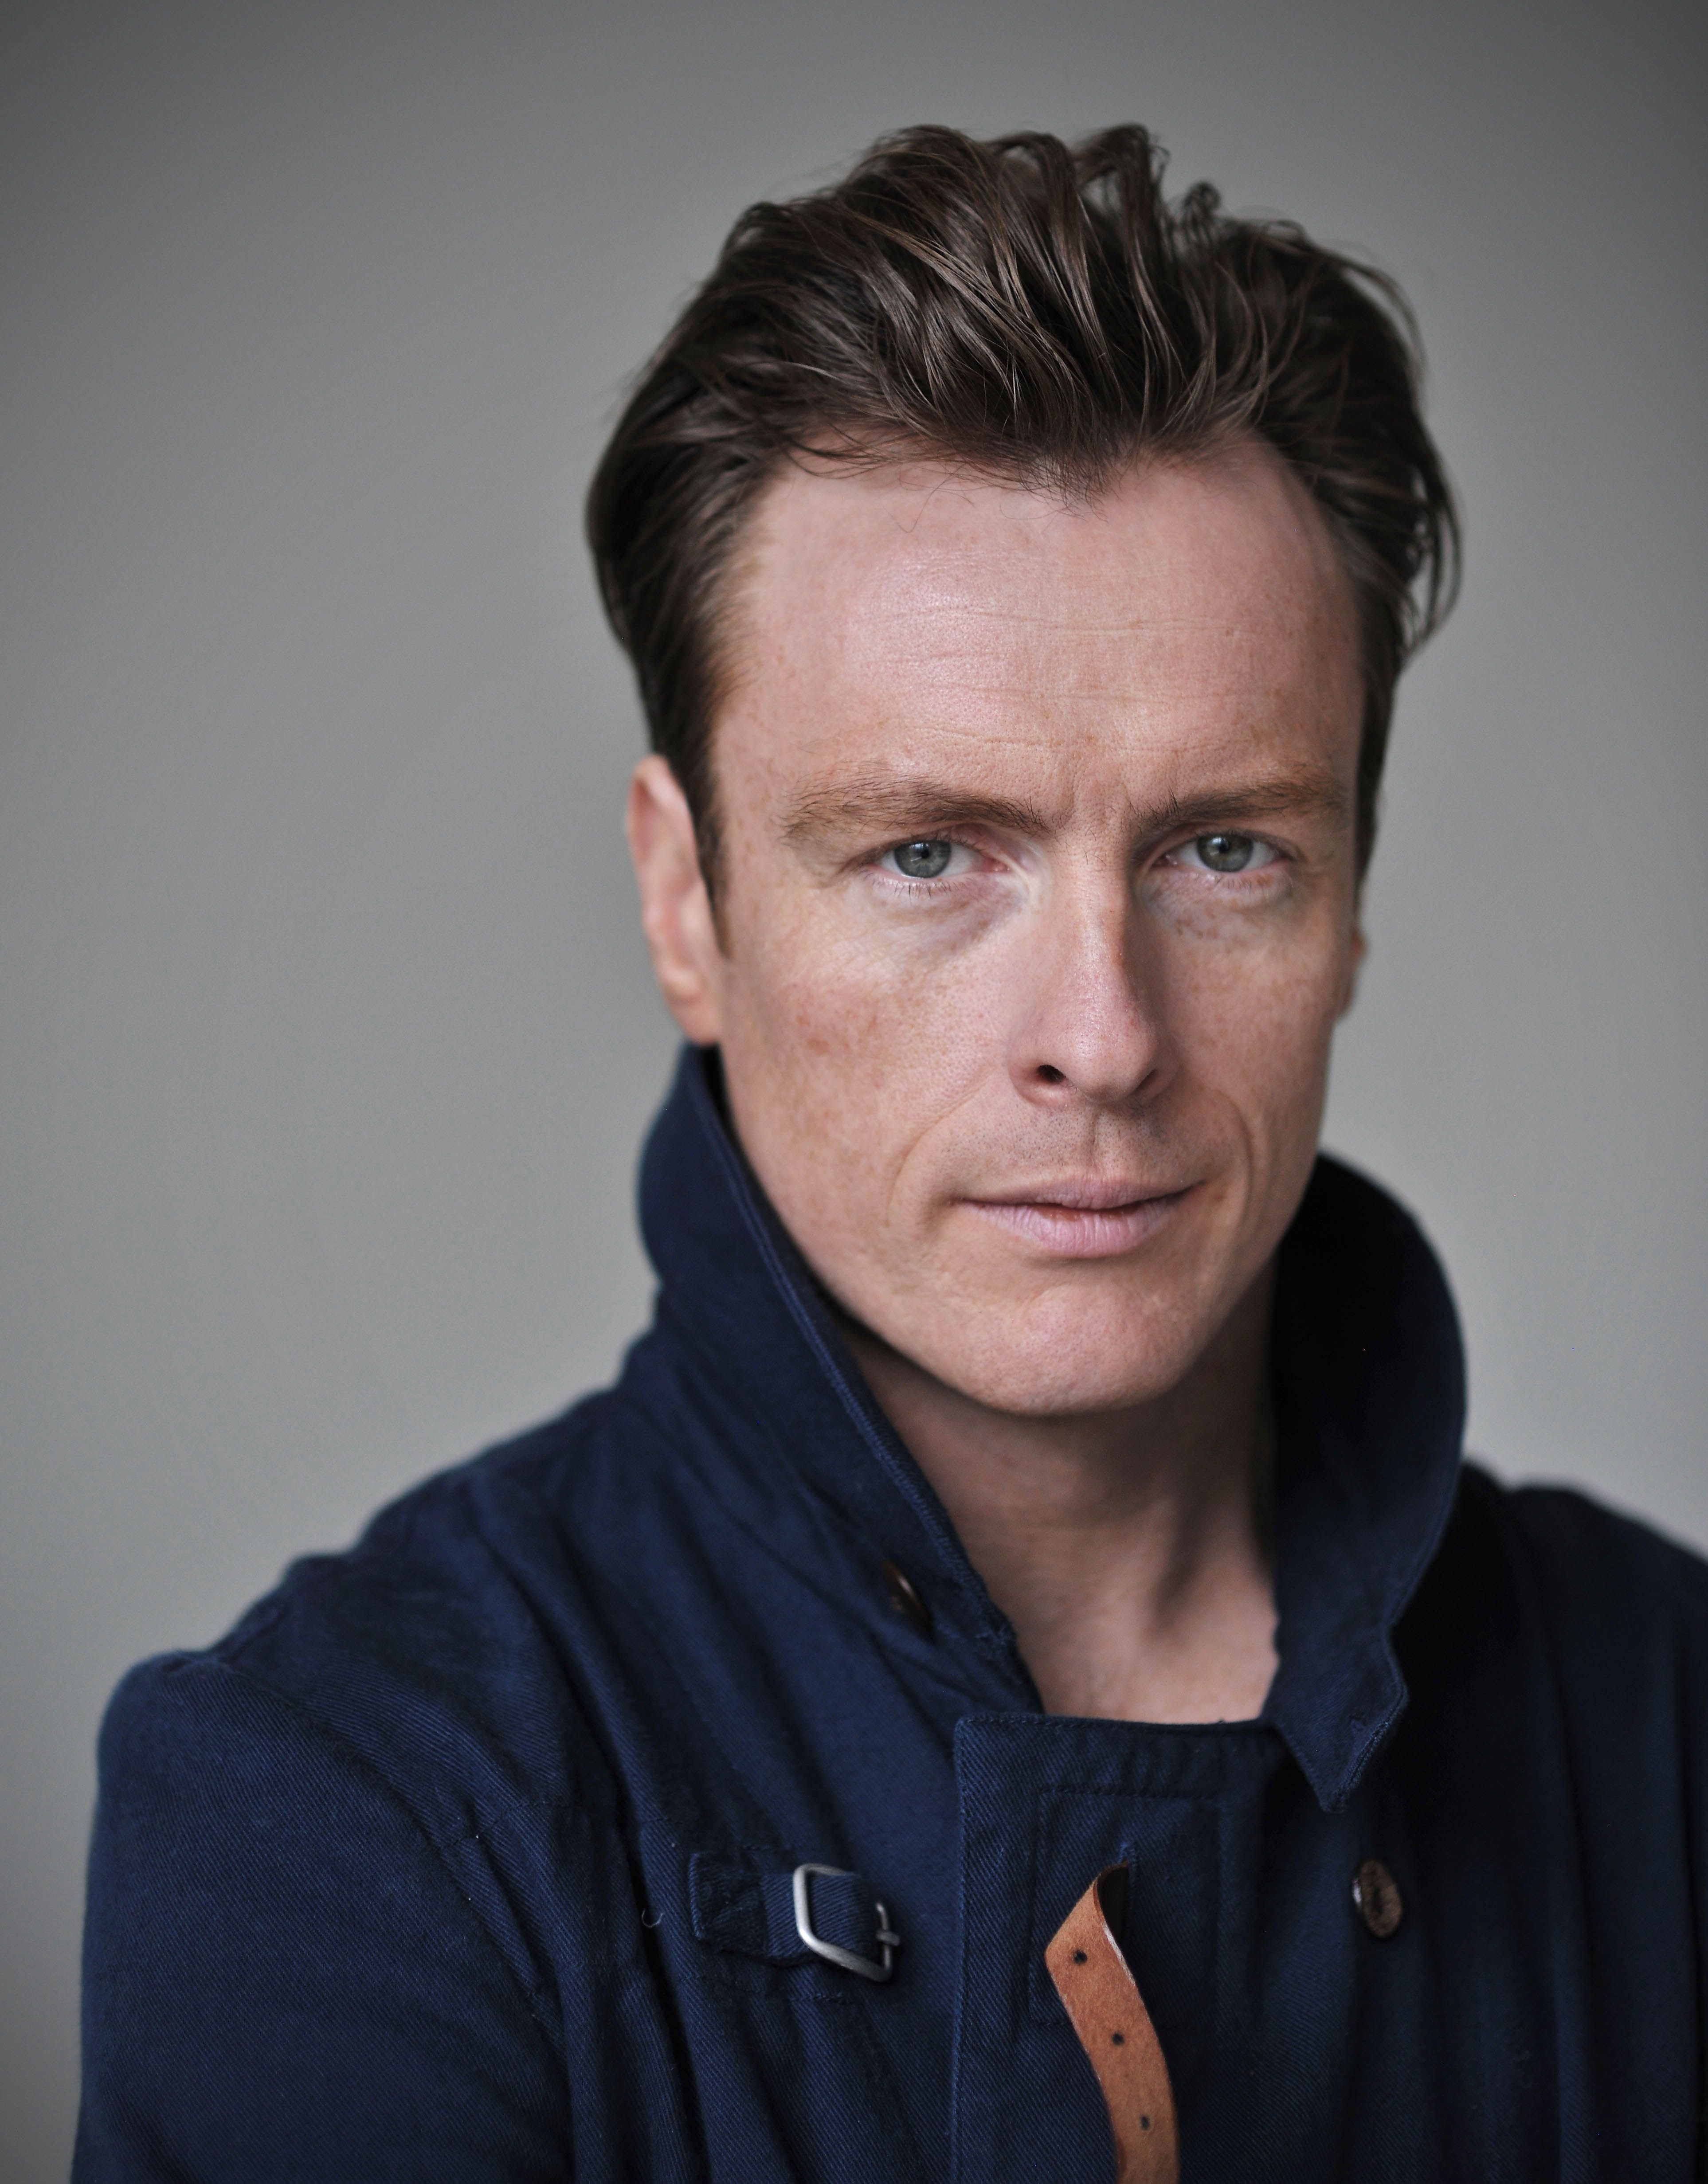 Toby Stephens (born 1969) Toby Stephens (born 1969) new images